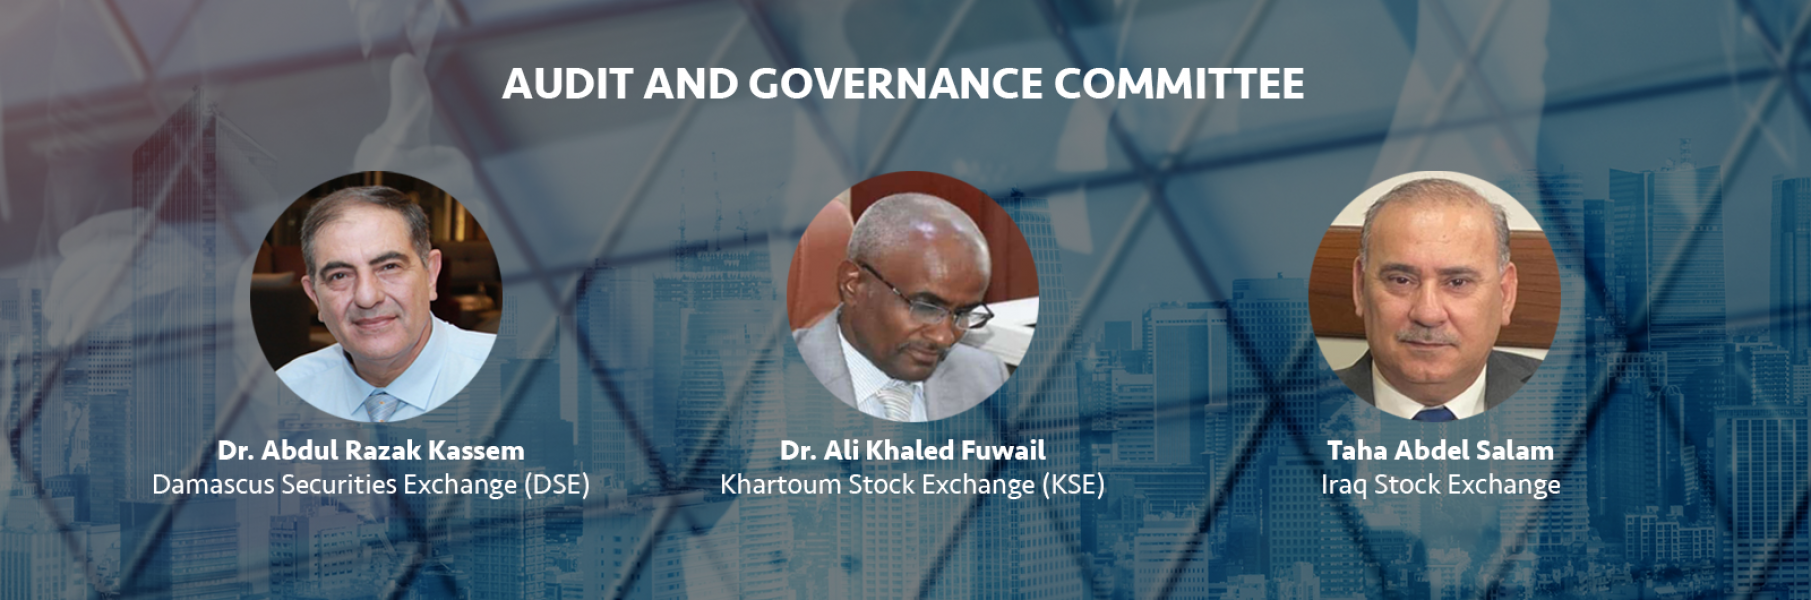 AUDIT AND GOVERNANCE COMMITTEE